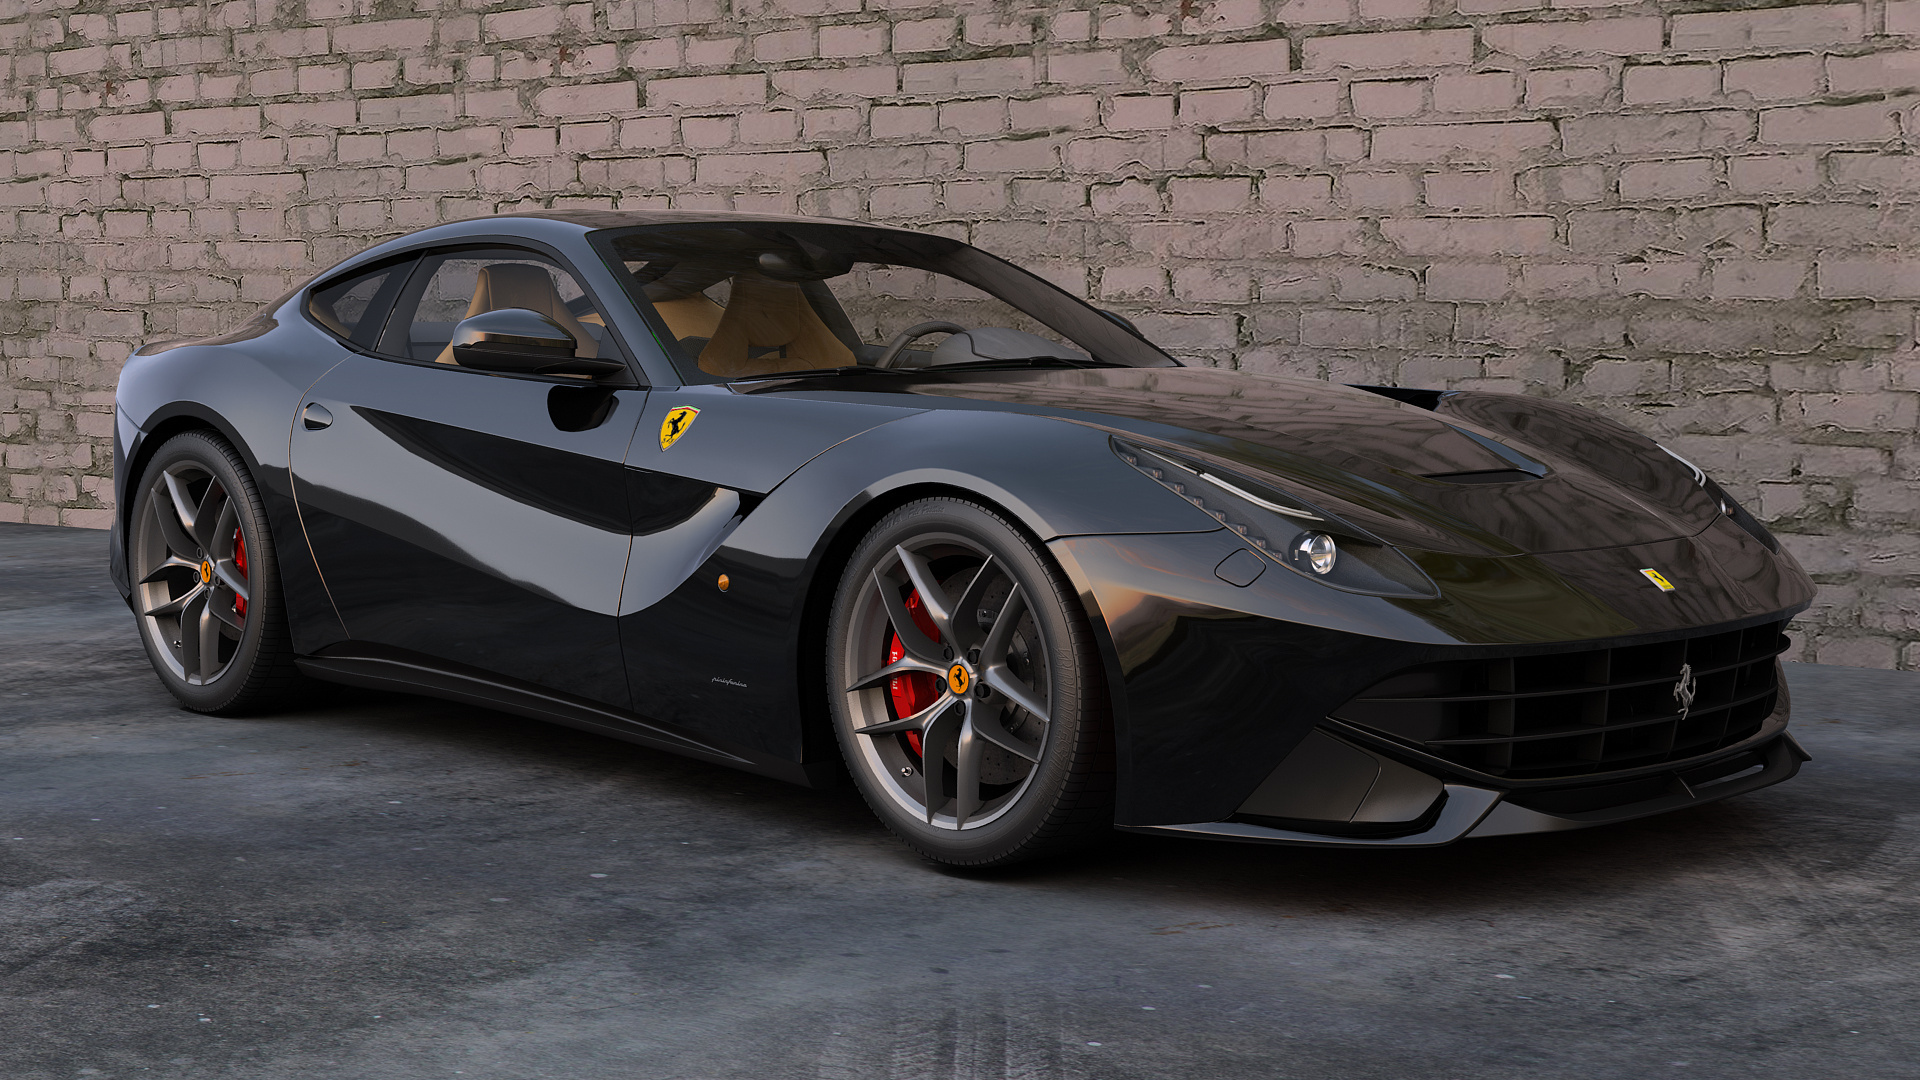 Ferrari F12 Tdf Price >> Ferrari F12berlinetta Full HD Wallpaper and Background ...